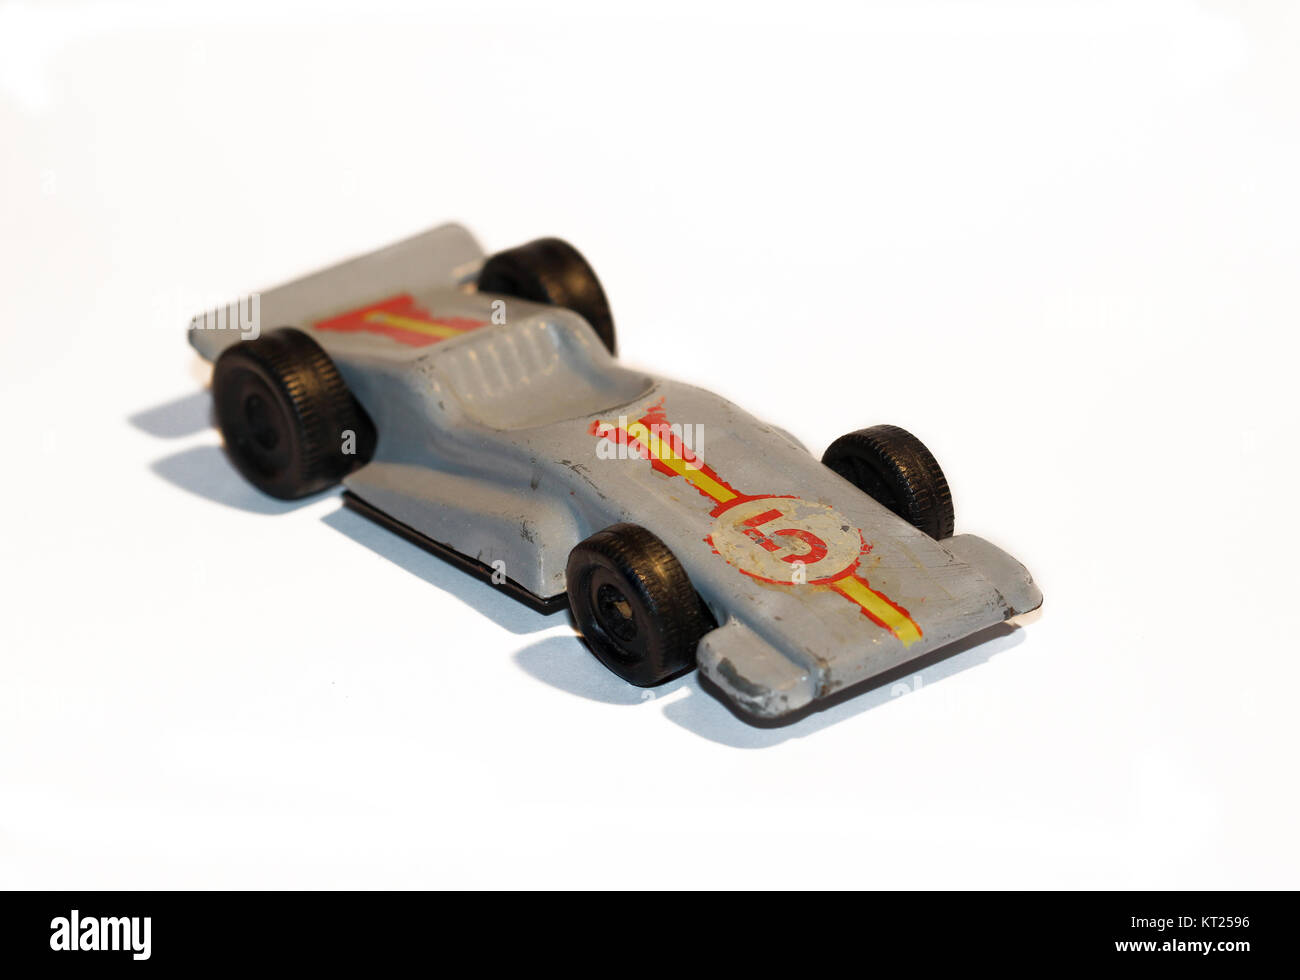 old toy car of metal - Stock Image